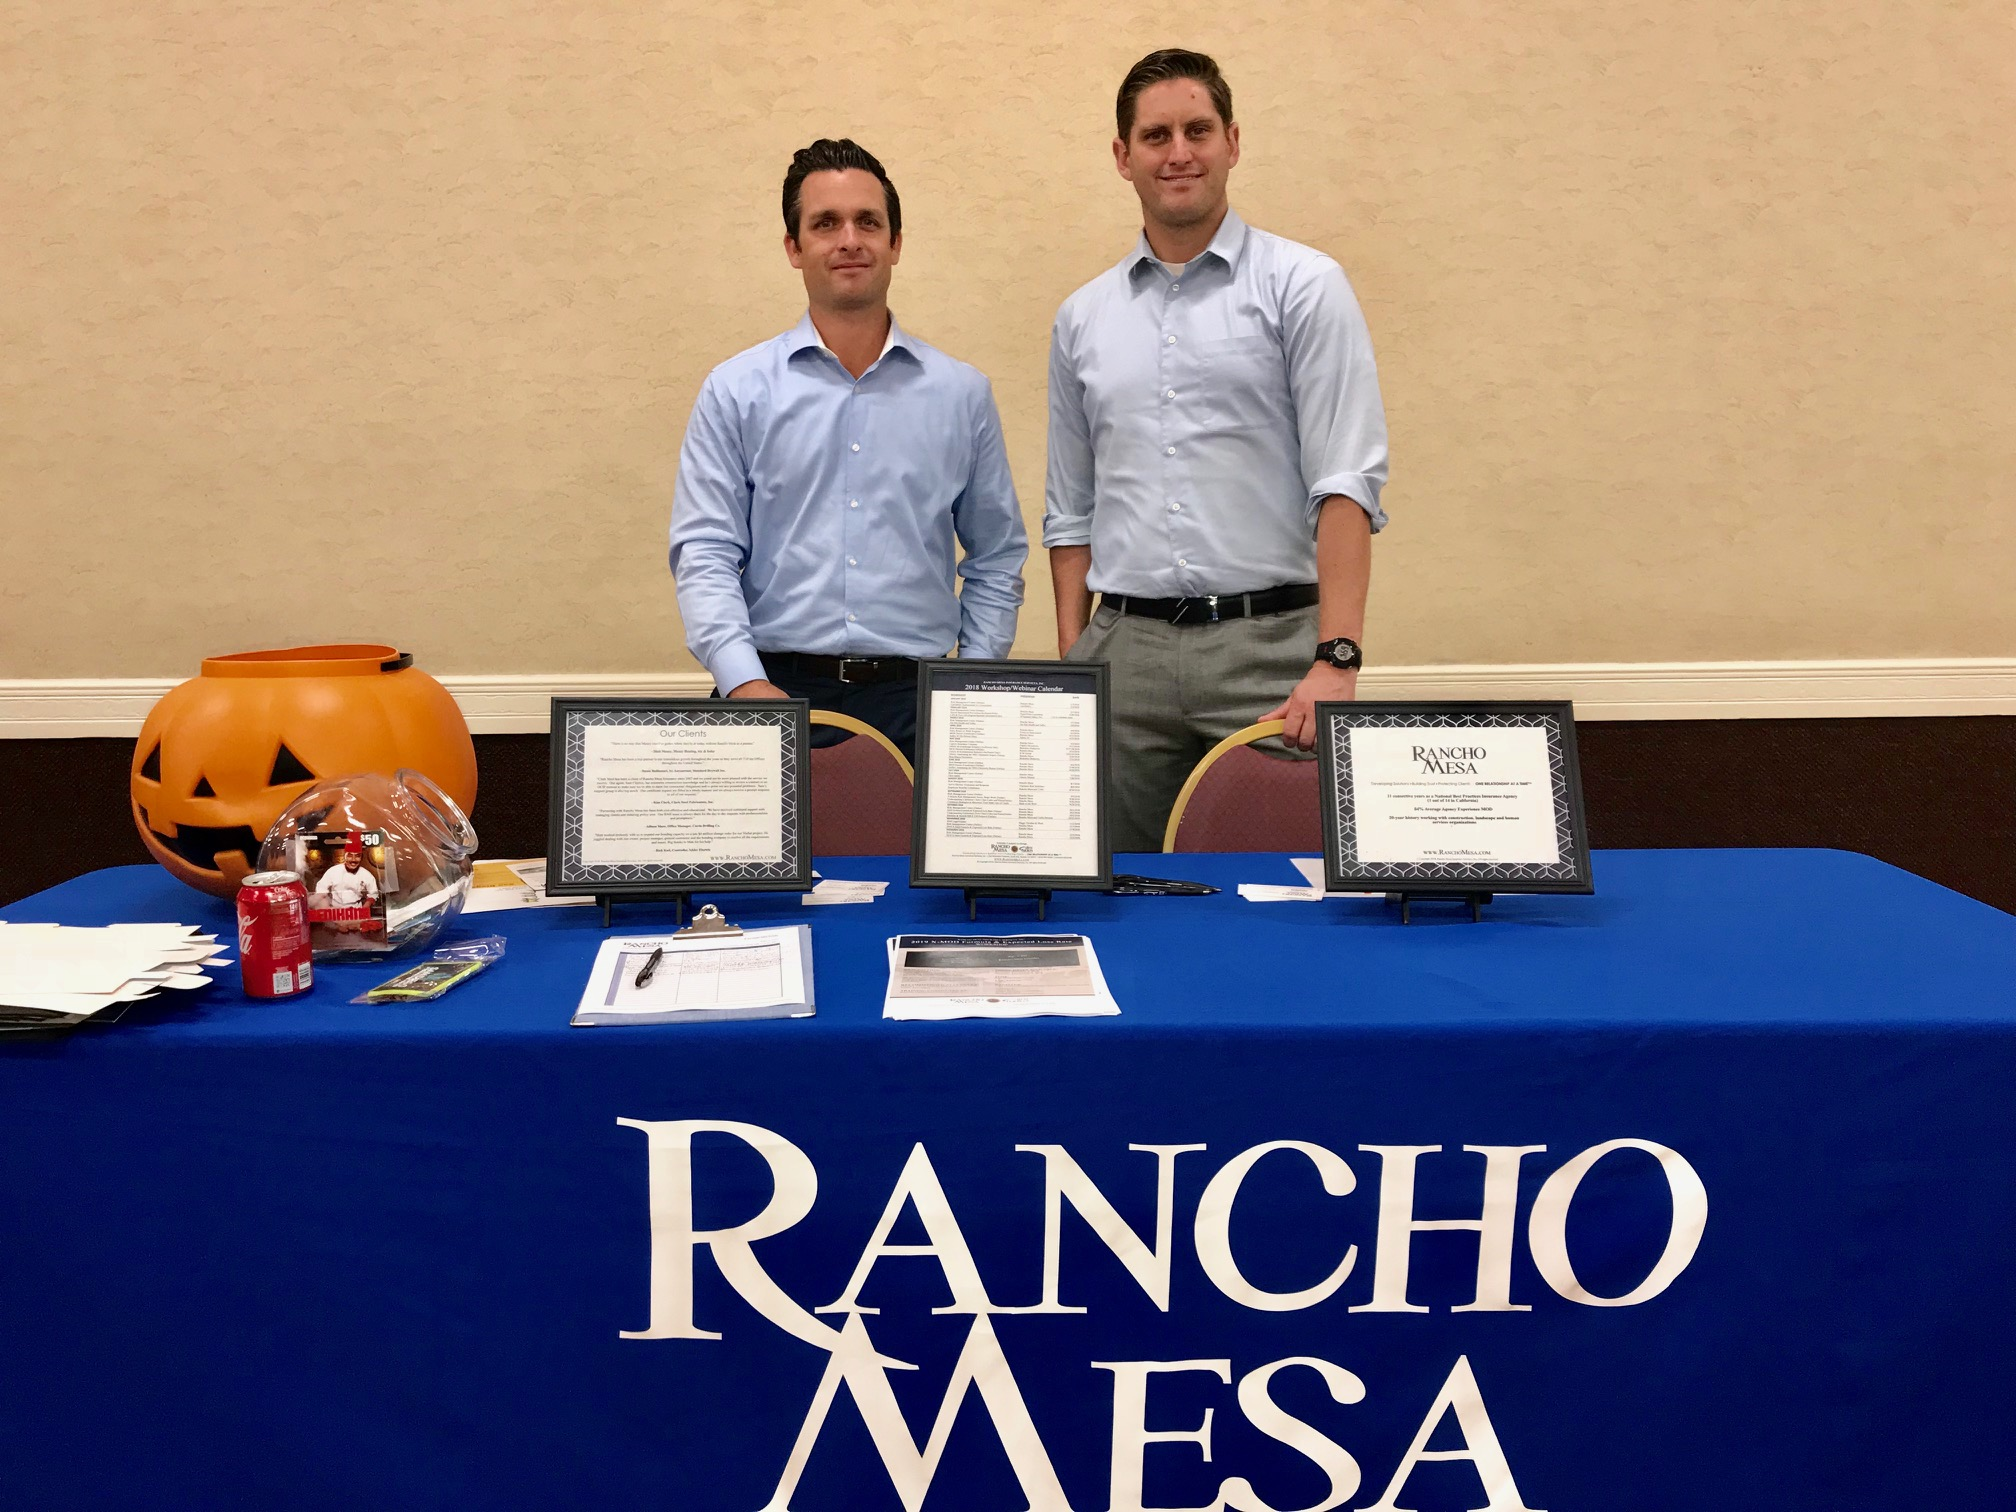 """Kevin Howard and Andy Robert standing behind a table with a """"Rancho Mesa"""" logo on the front."""